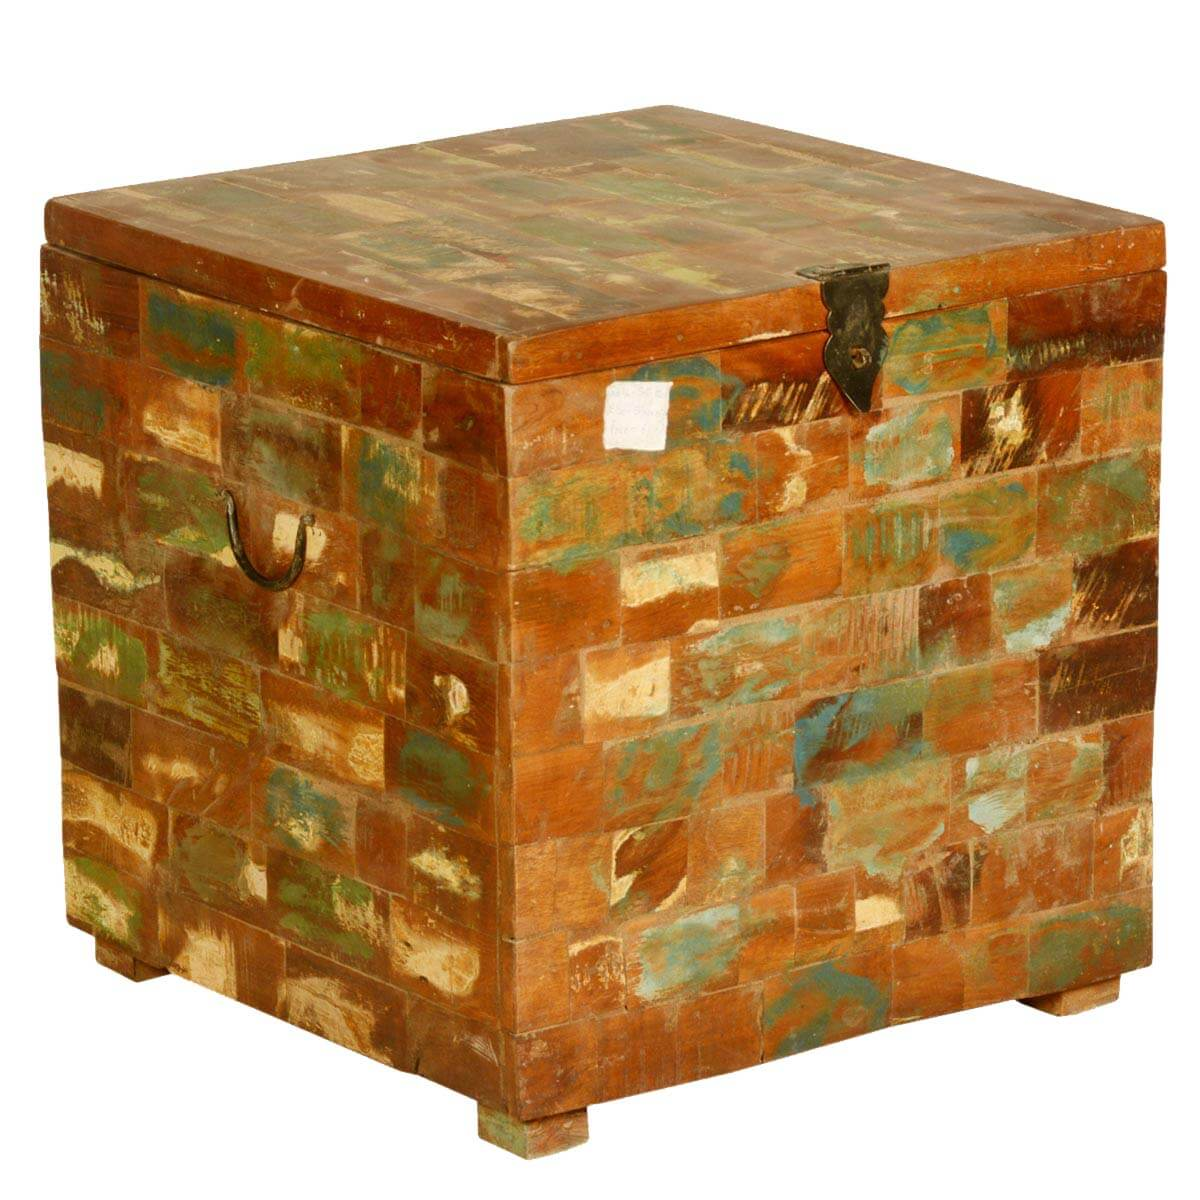 Box End Table Faux Brick Reclaimed Wood 19 5 Square Storage Box End Table